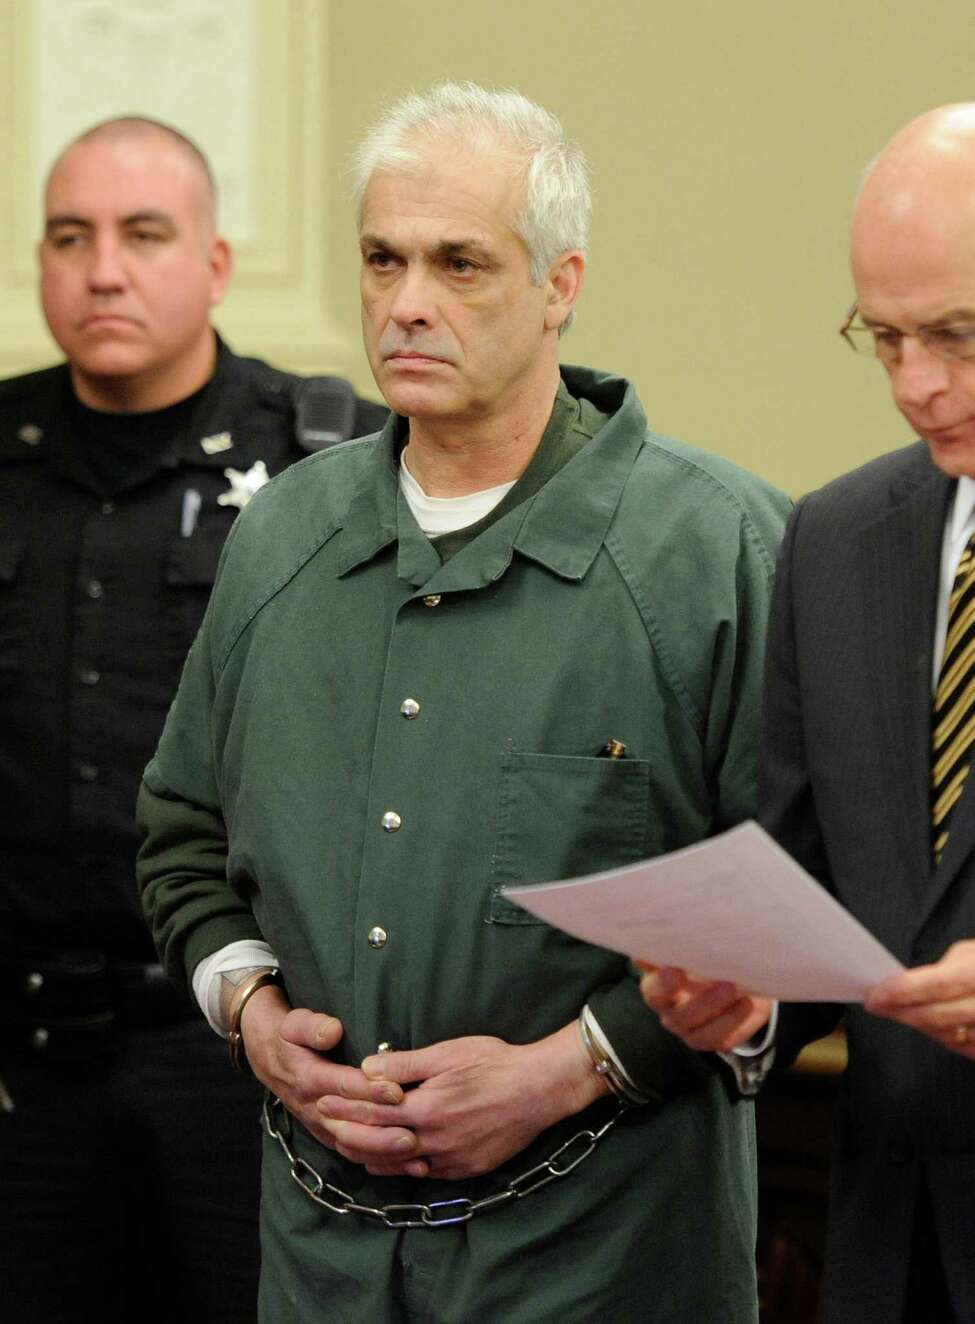 Rory Poulin, center, is arraigned on murder charges at the Rensselaer County Courthouse in Troy, N.Y. Dec. 15, 2011. (Skip Dickstein / Times Union archive)